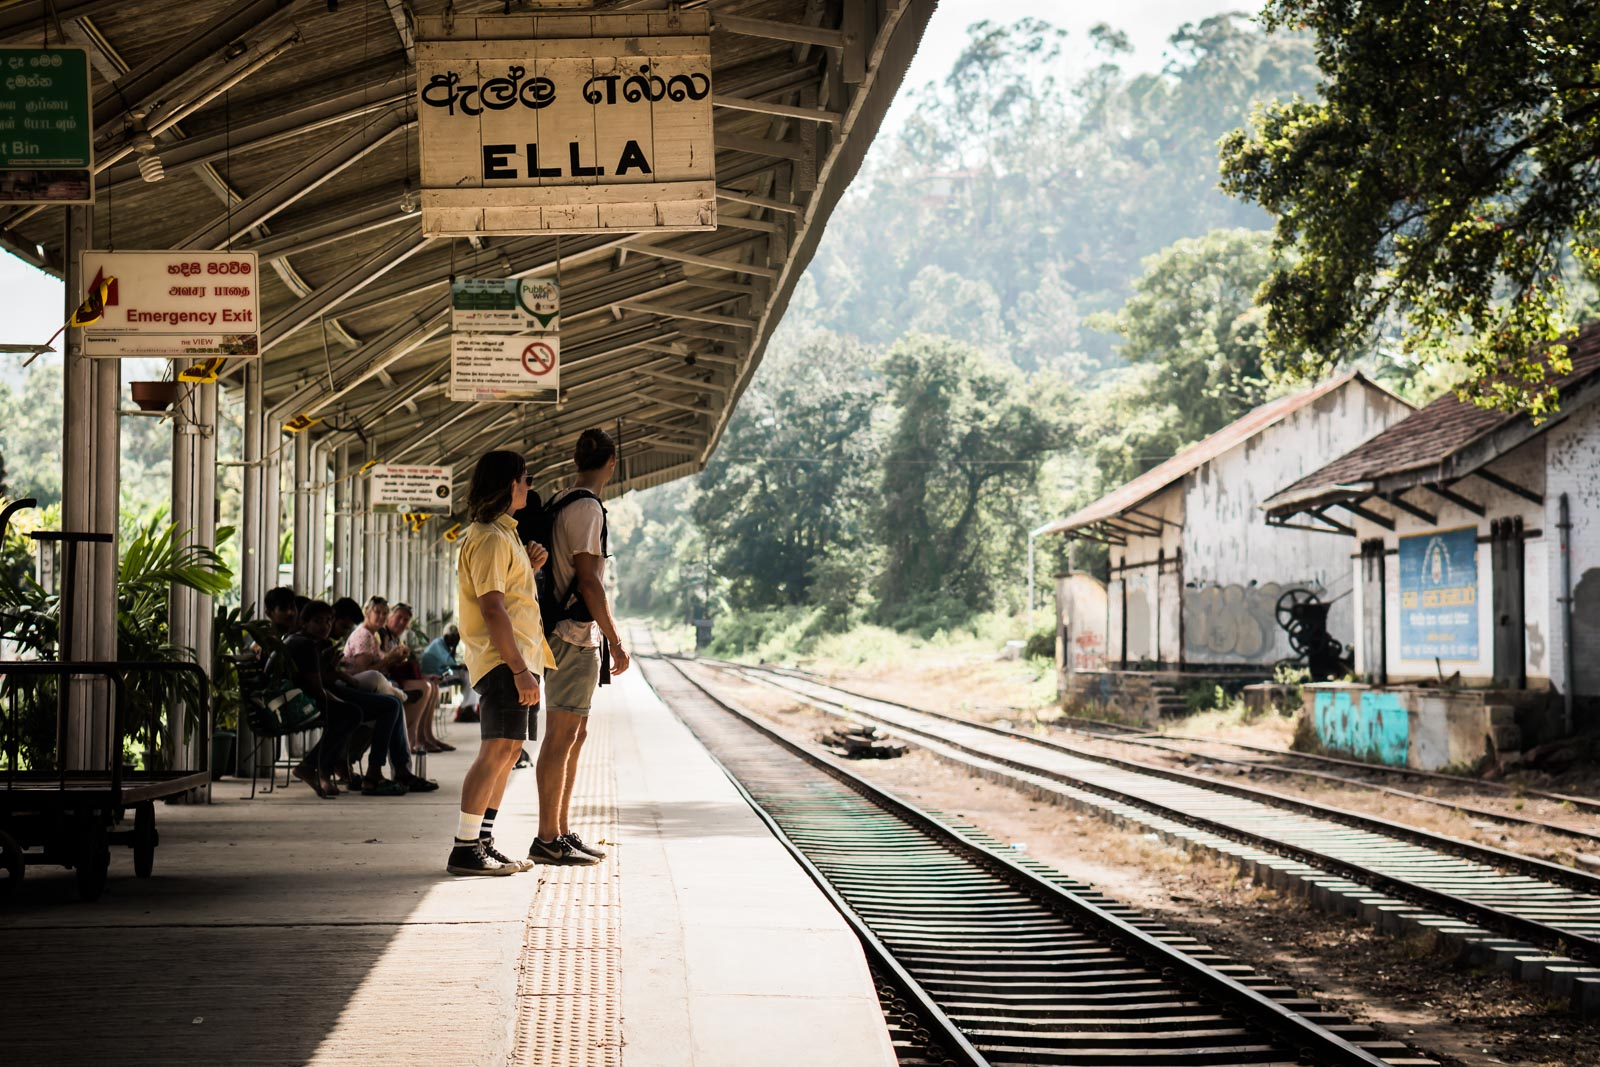 train-station-ella-sri-lanka